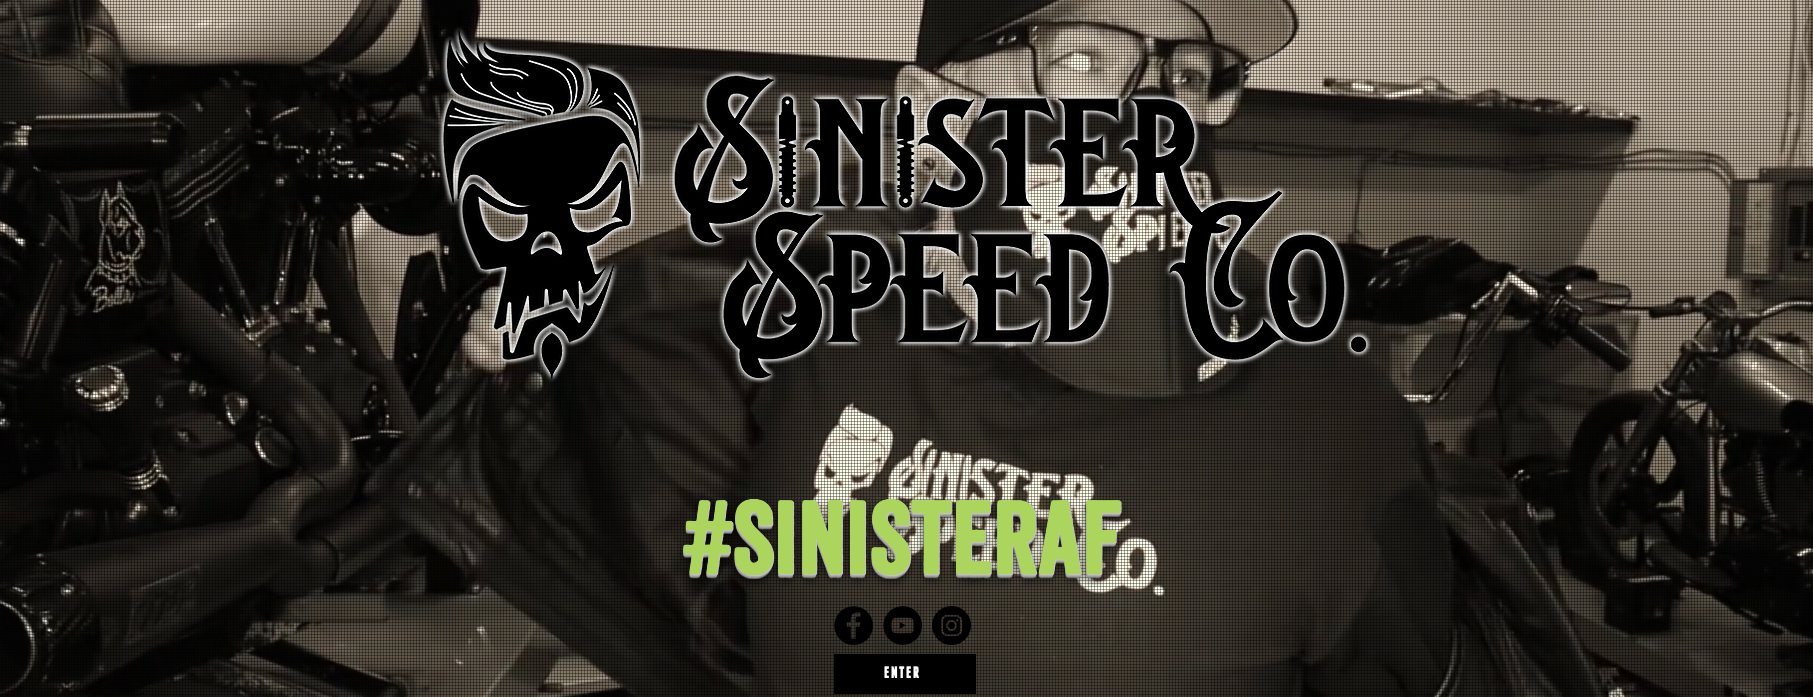 Sinister Speed Co. Website